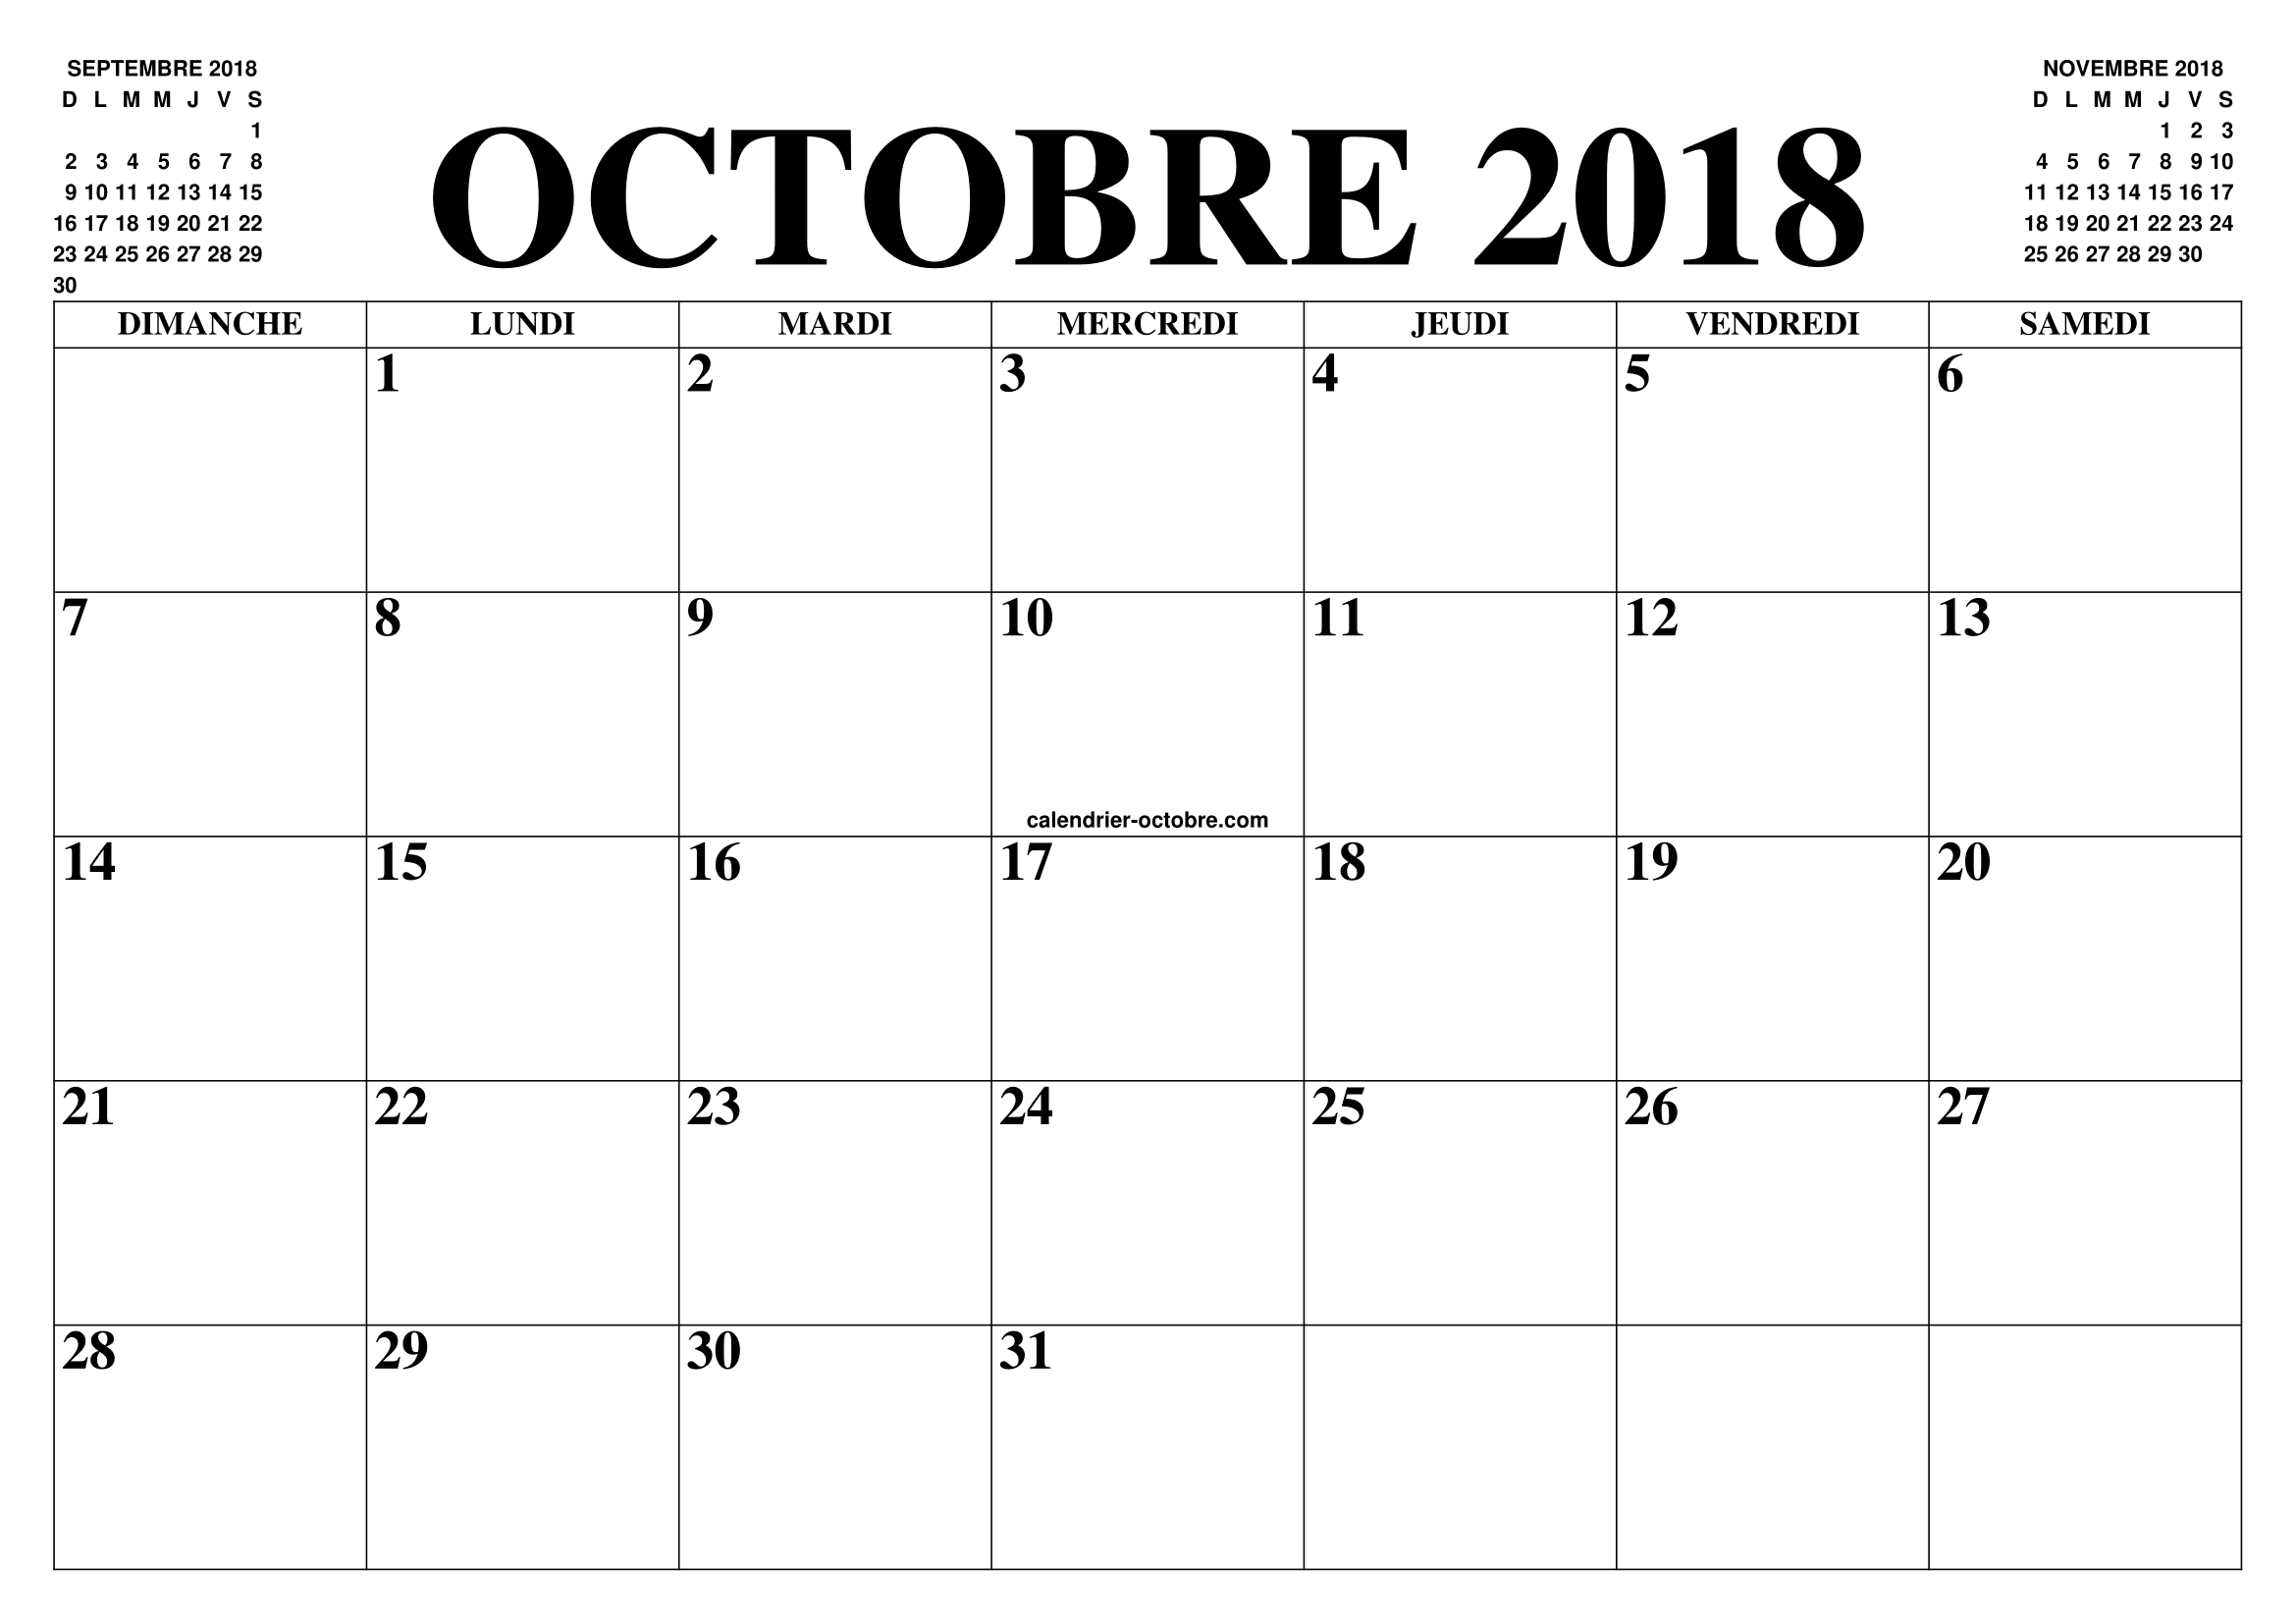 calendrier octobre 2018 2019 le calendrier du mois de octobre 2018 2019 gratuit a imprimer. Black Bedroom Furniture Sets. Home Design Ideas